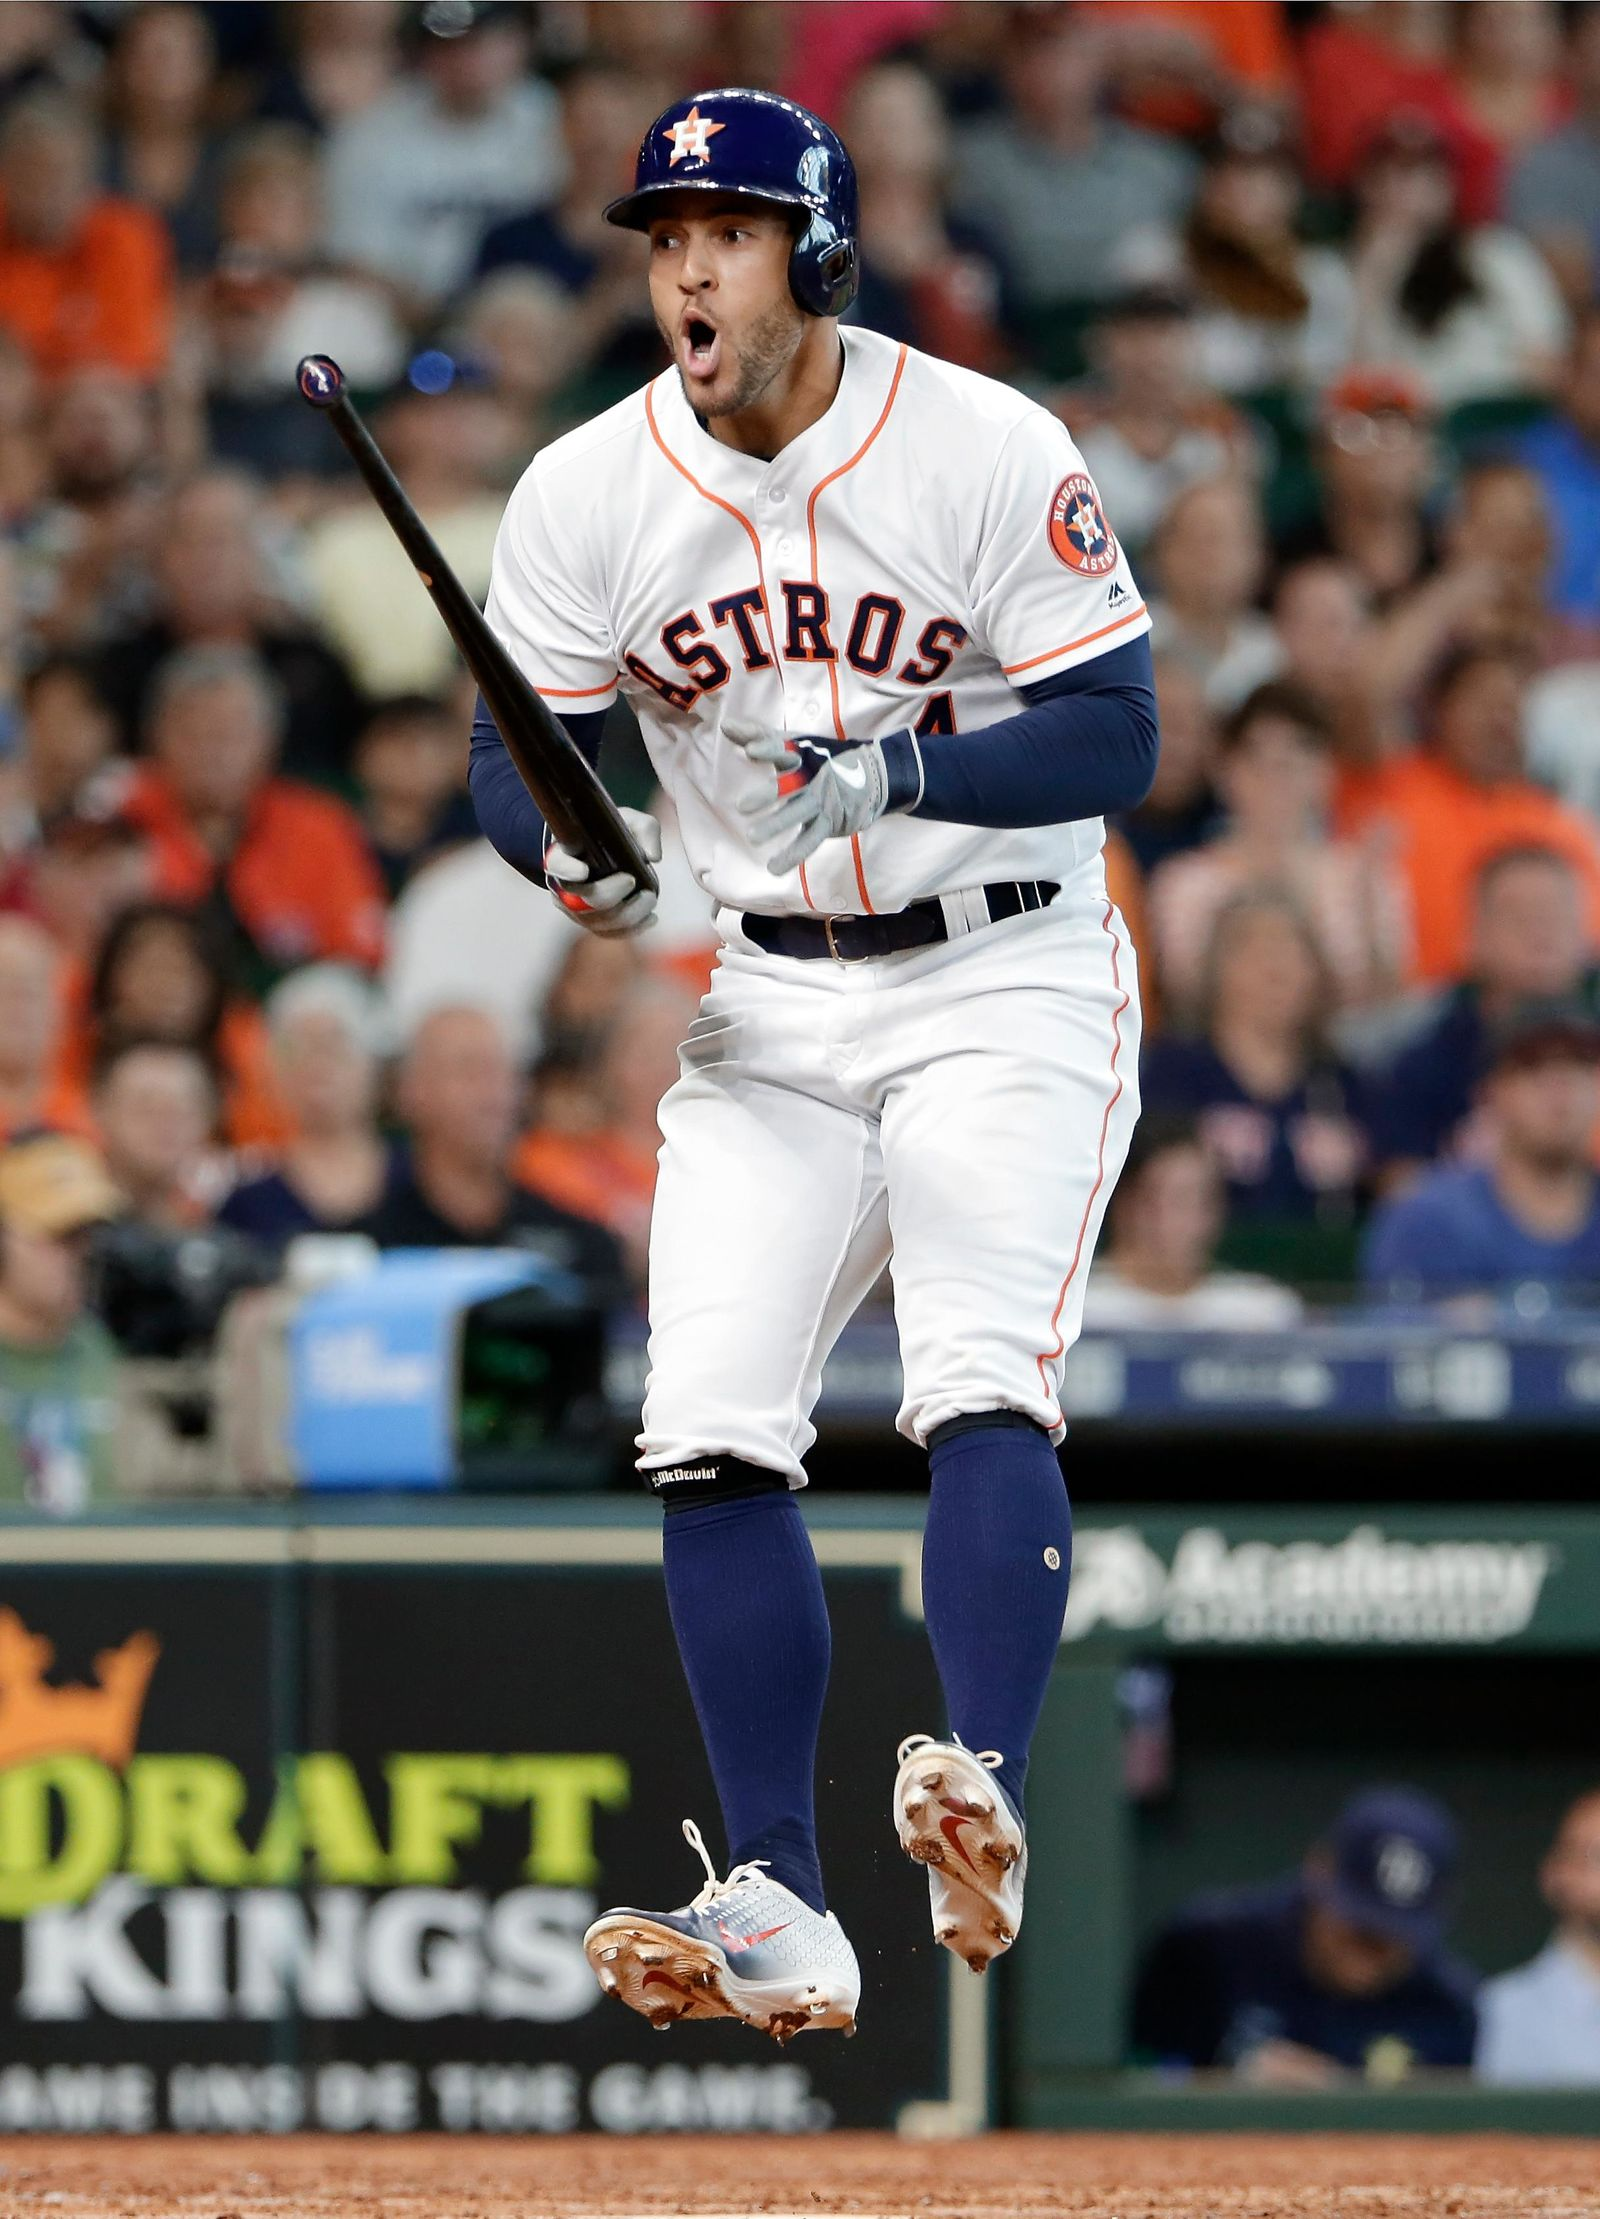 With the bases loaded, Houston Astros' George Springer jumps in the air in reaction to getting a strike call on what he thought was a ball during the fourth inning of a baseball game against Tampa Bay Thursday, Aug. 29, 2019, in Houston. Springer was walked on the next pitch, scoring a run.(AP Photo/Michael Wyke)